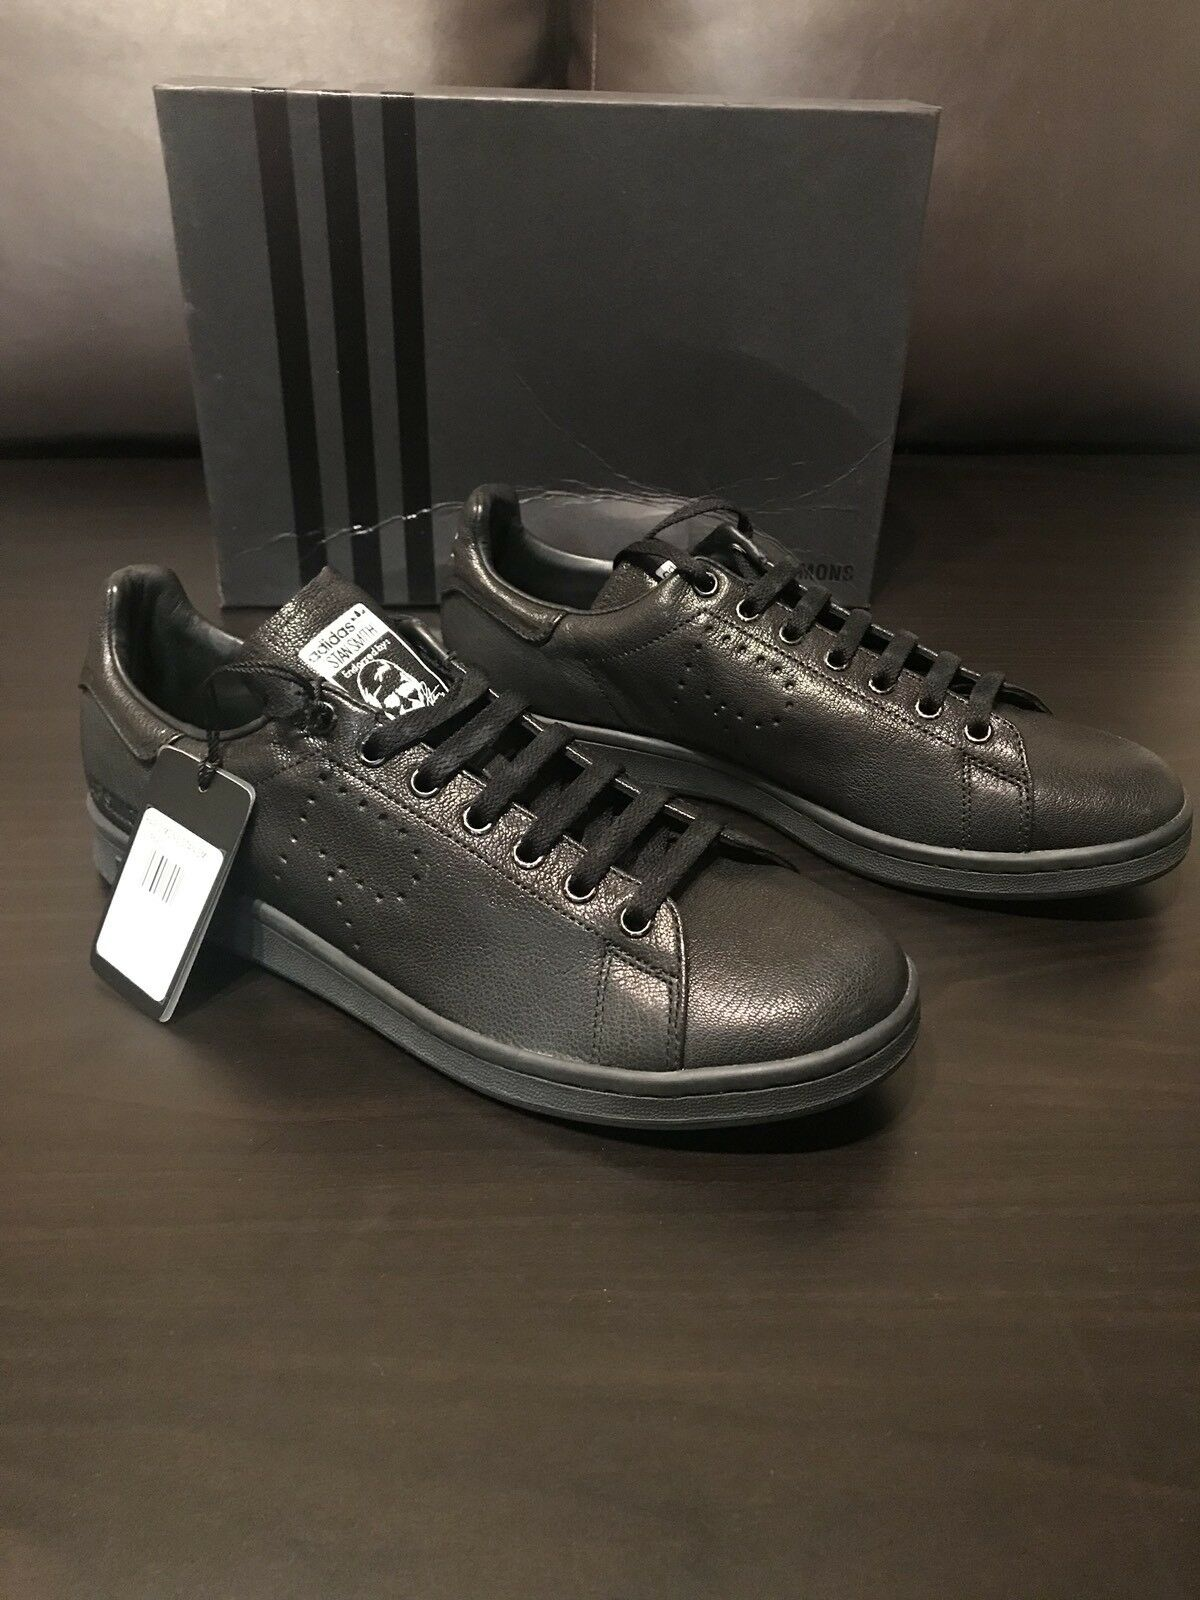 Adidas by - Raf Simons (Stan Smith) - by Black Leather Sneakers - Men's Size 11 d39846